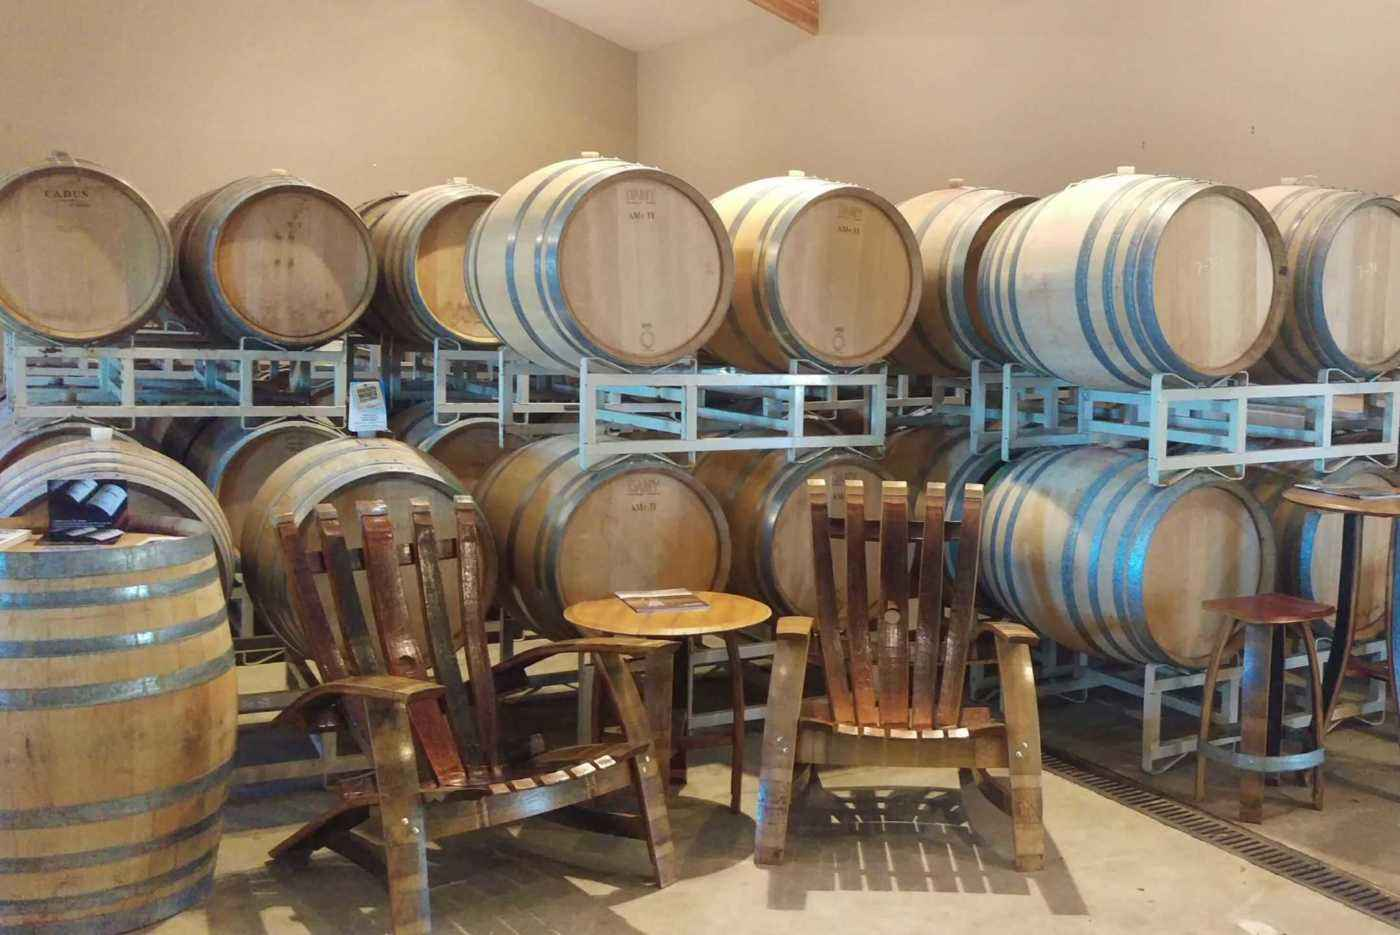 Seating among the wine barrels